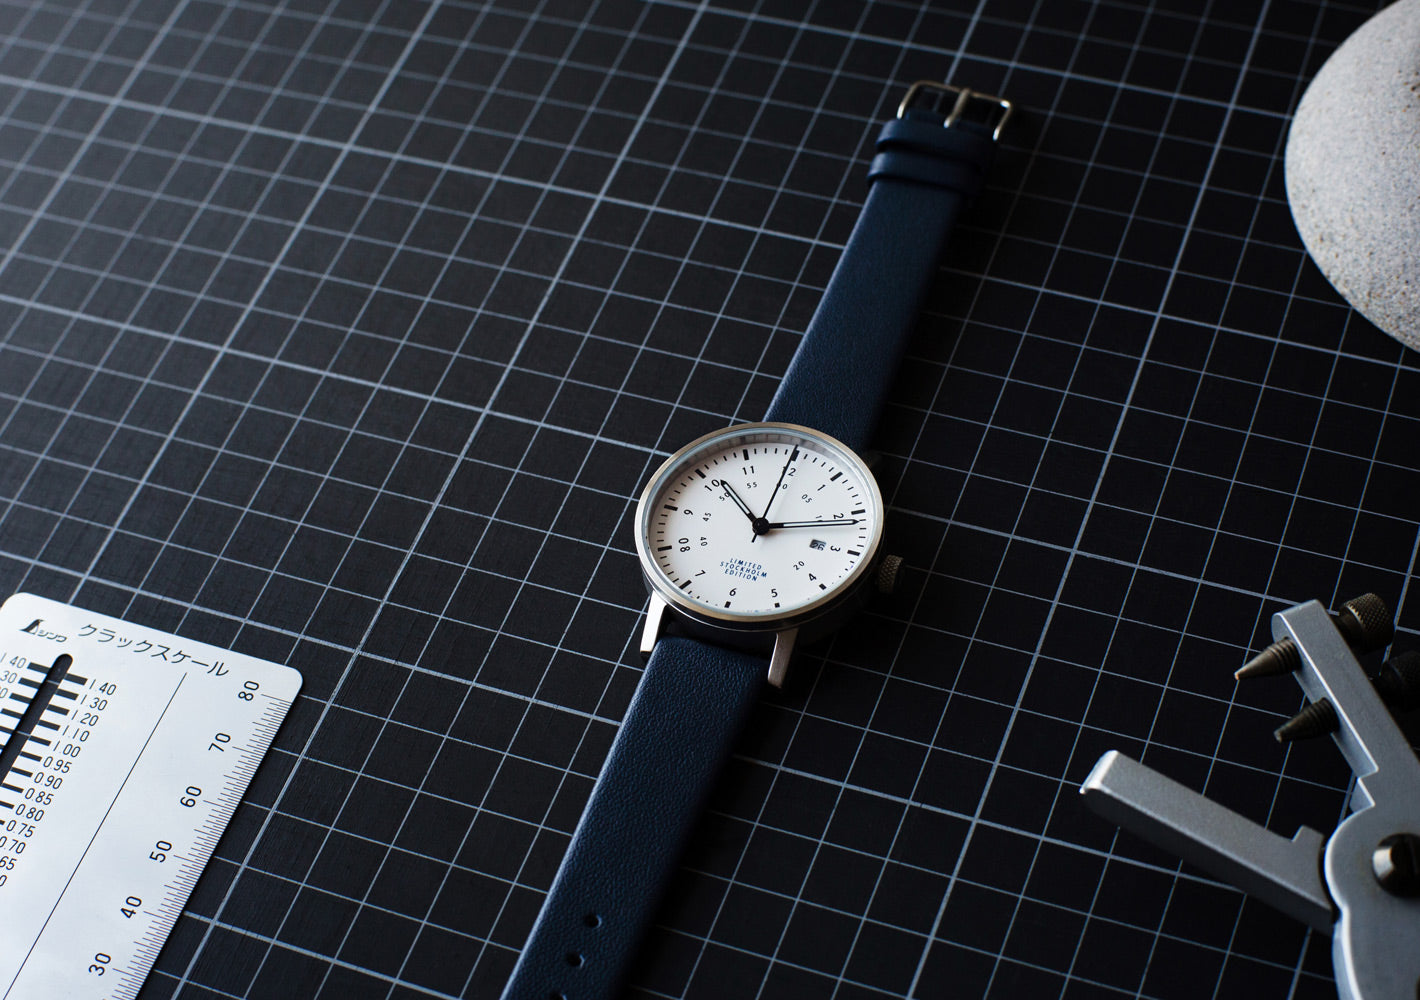 The Limited Edition V03D-STHLM from VOID Watches, designed by David Ericsson.